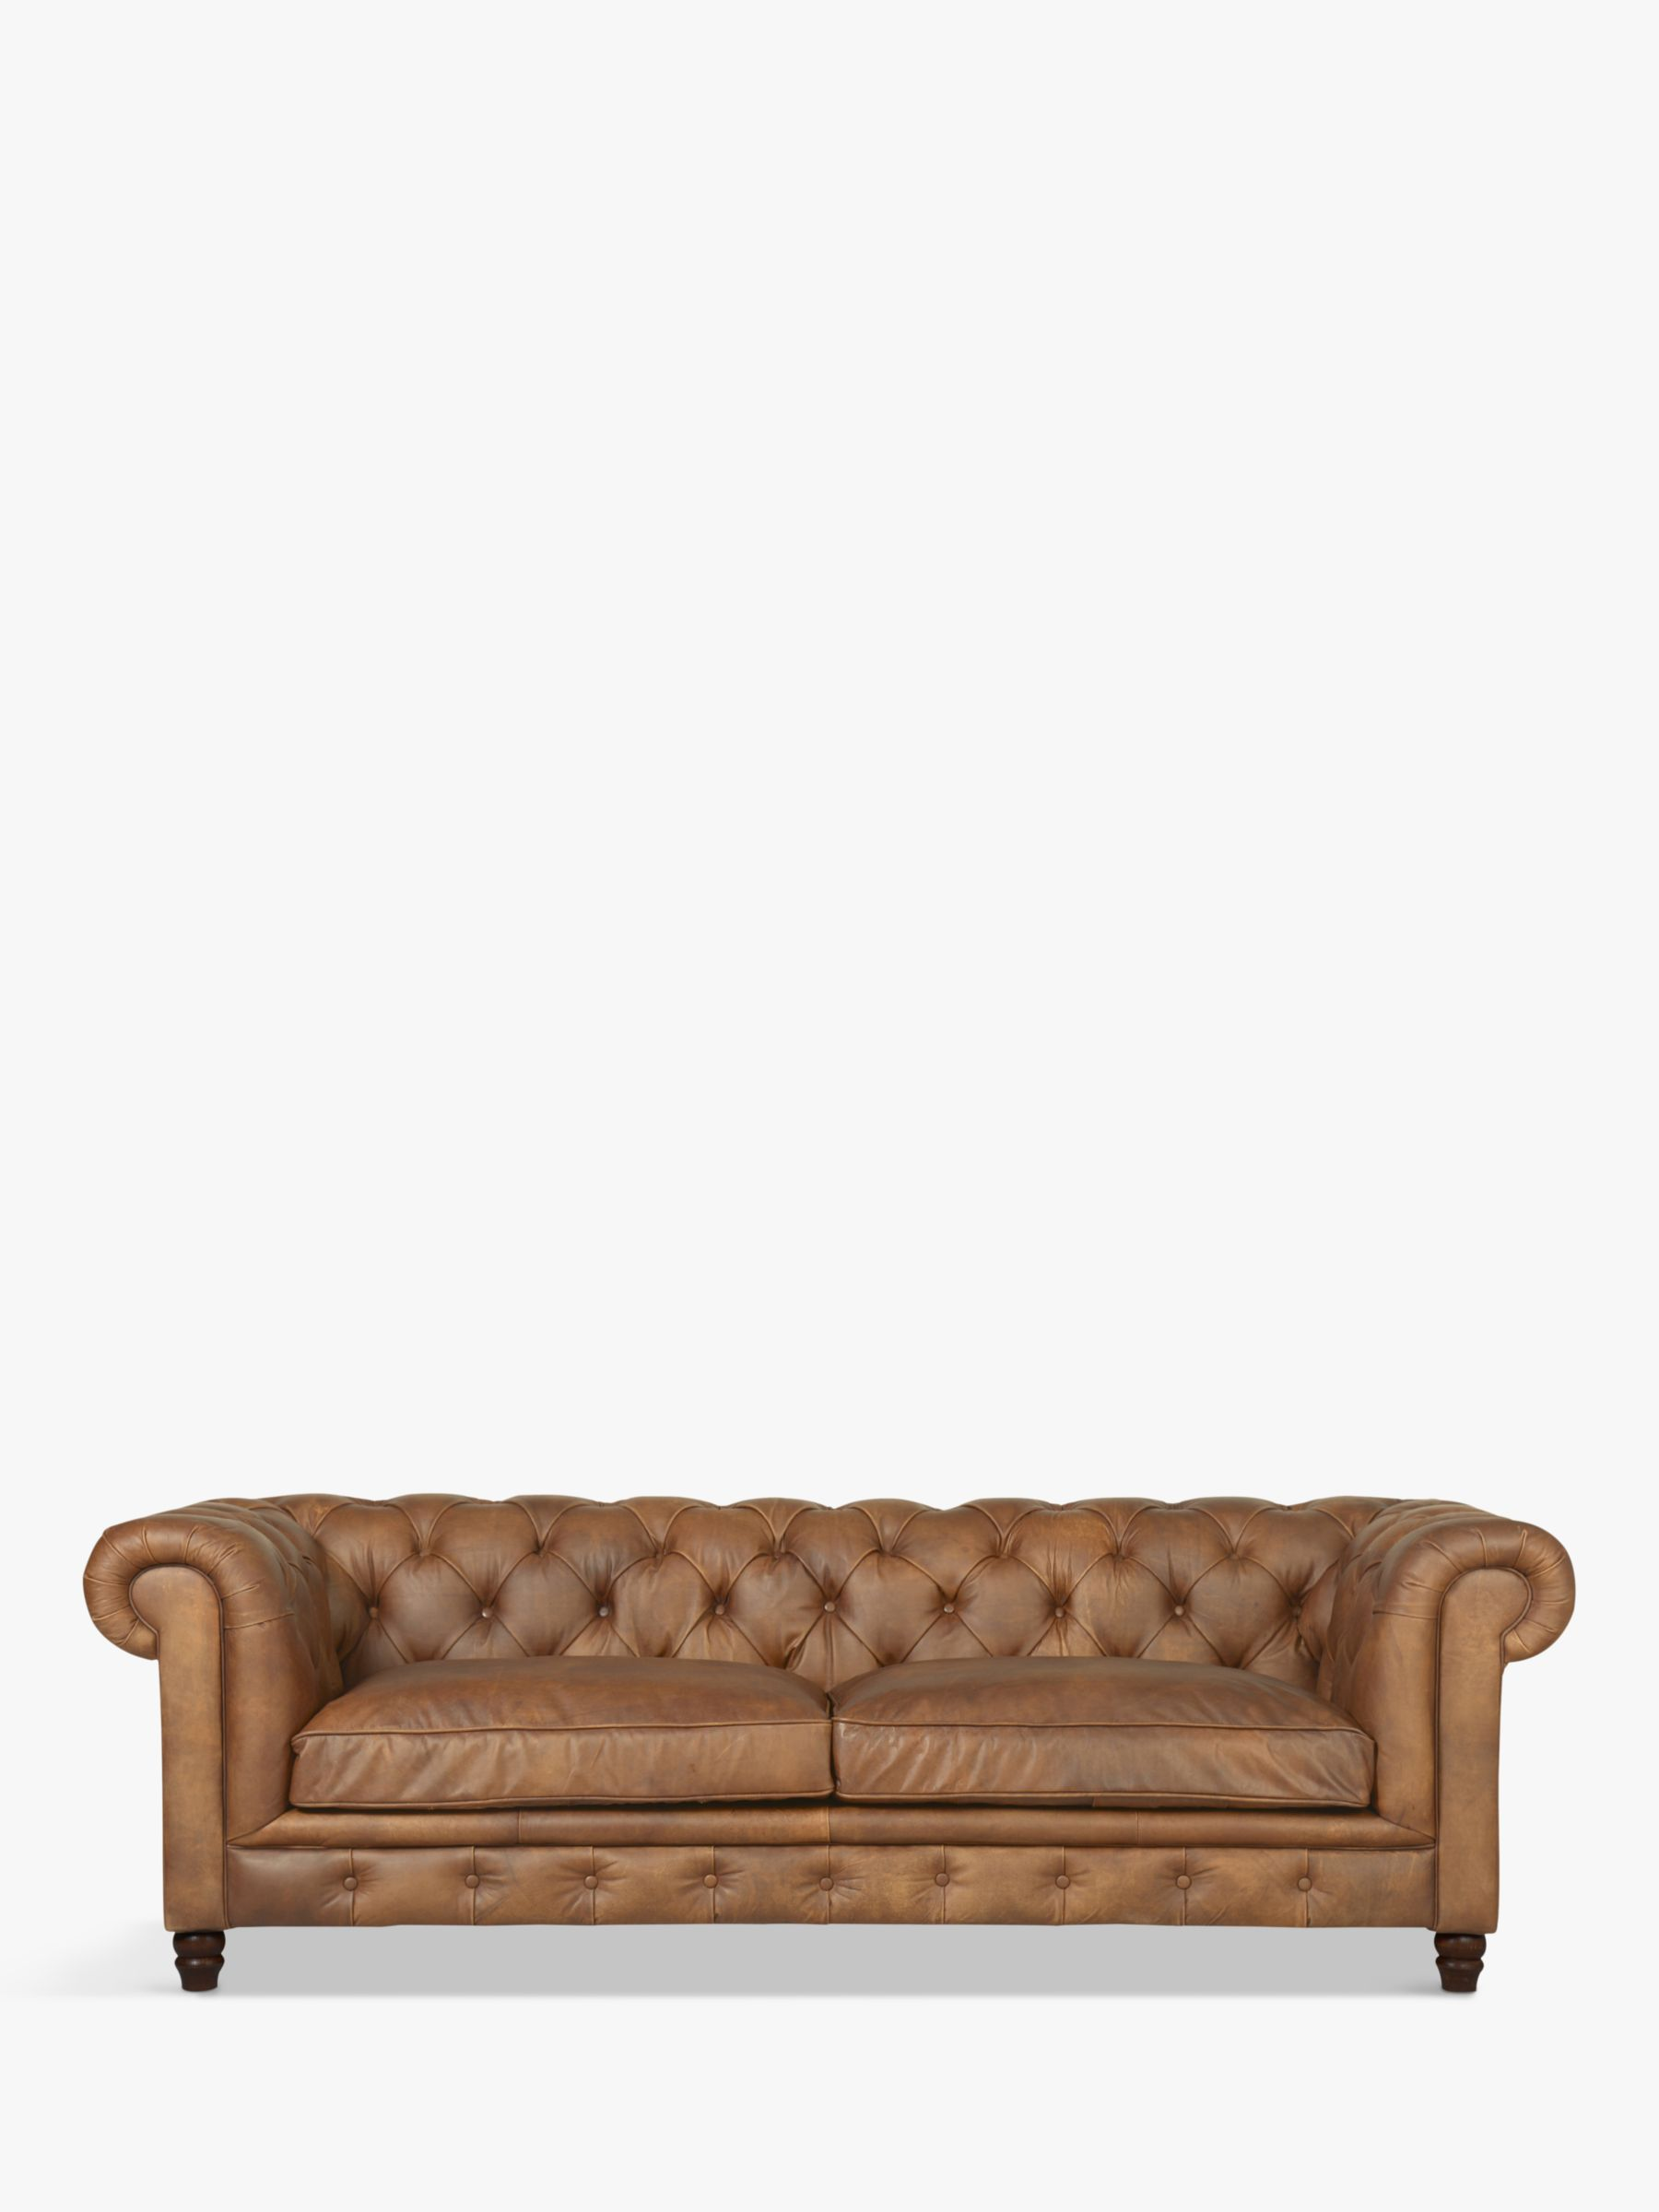 Halo Halo Earle Chesterfield Grand 4 Seater Leather Sofa